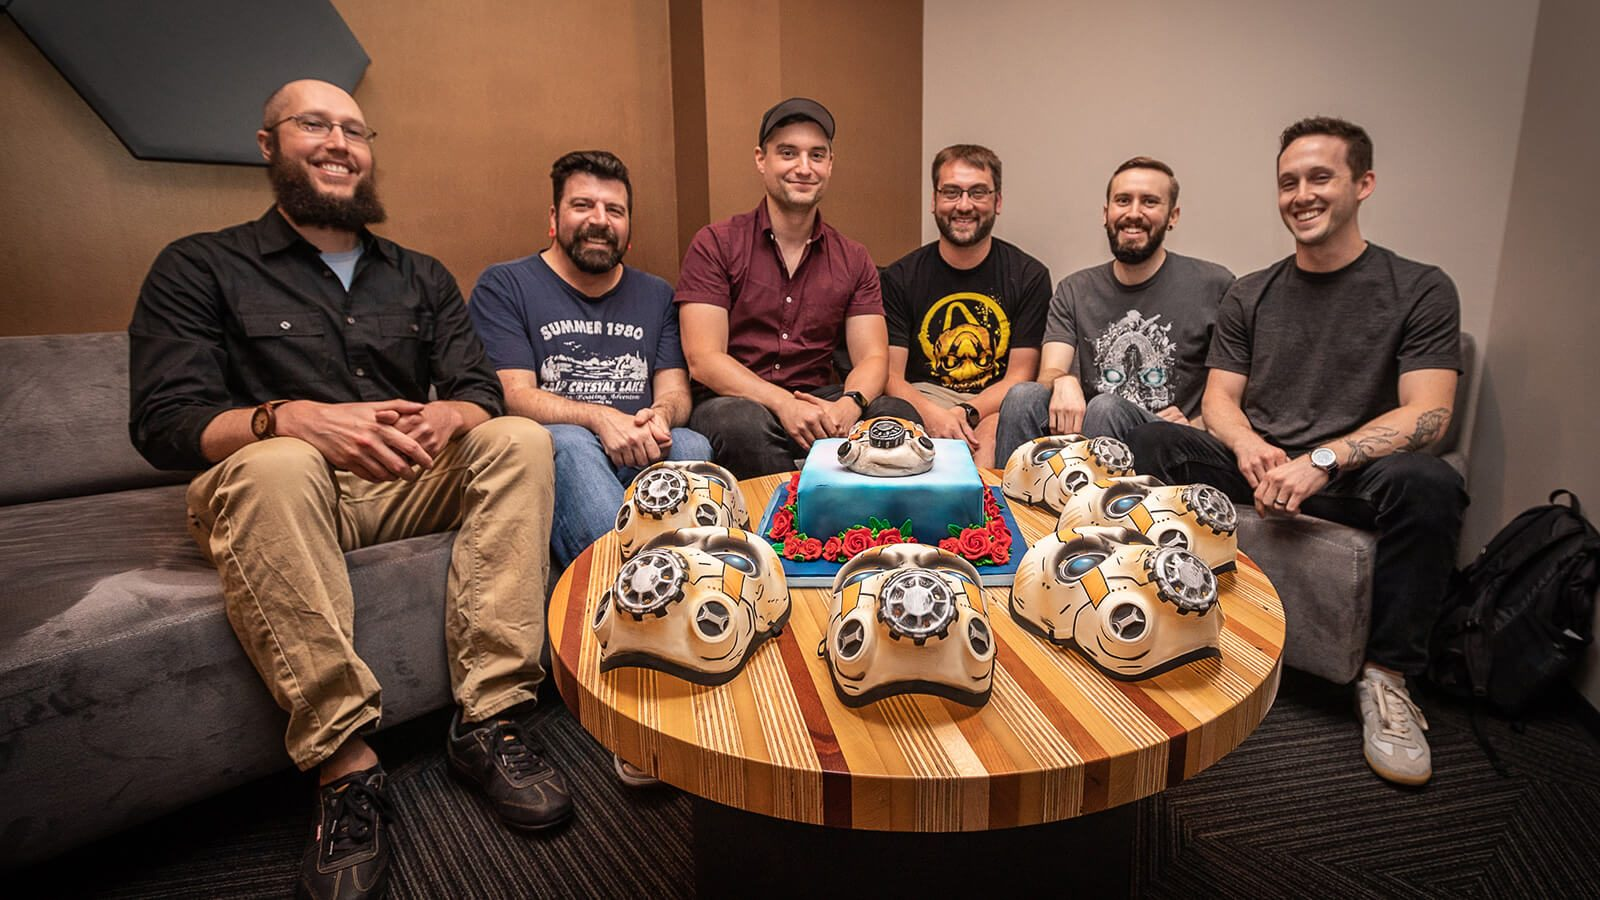 'Borderlands 3': Grads Return to Campus to Share Behind-The-Scenes Insights with Students - Hero image